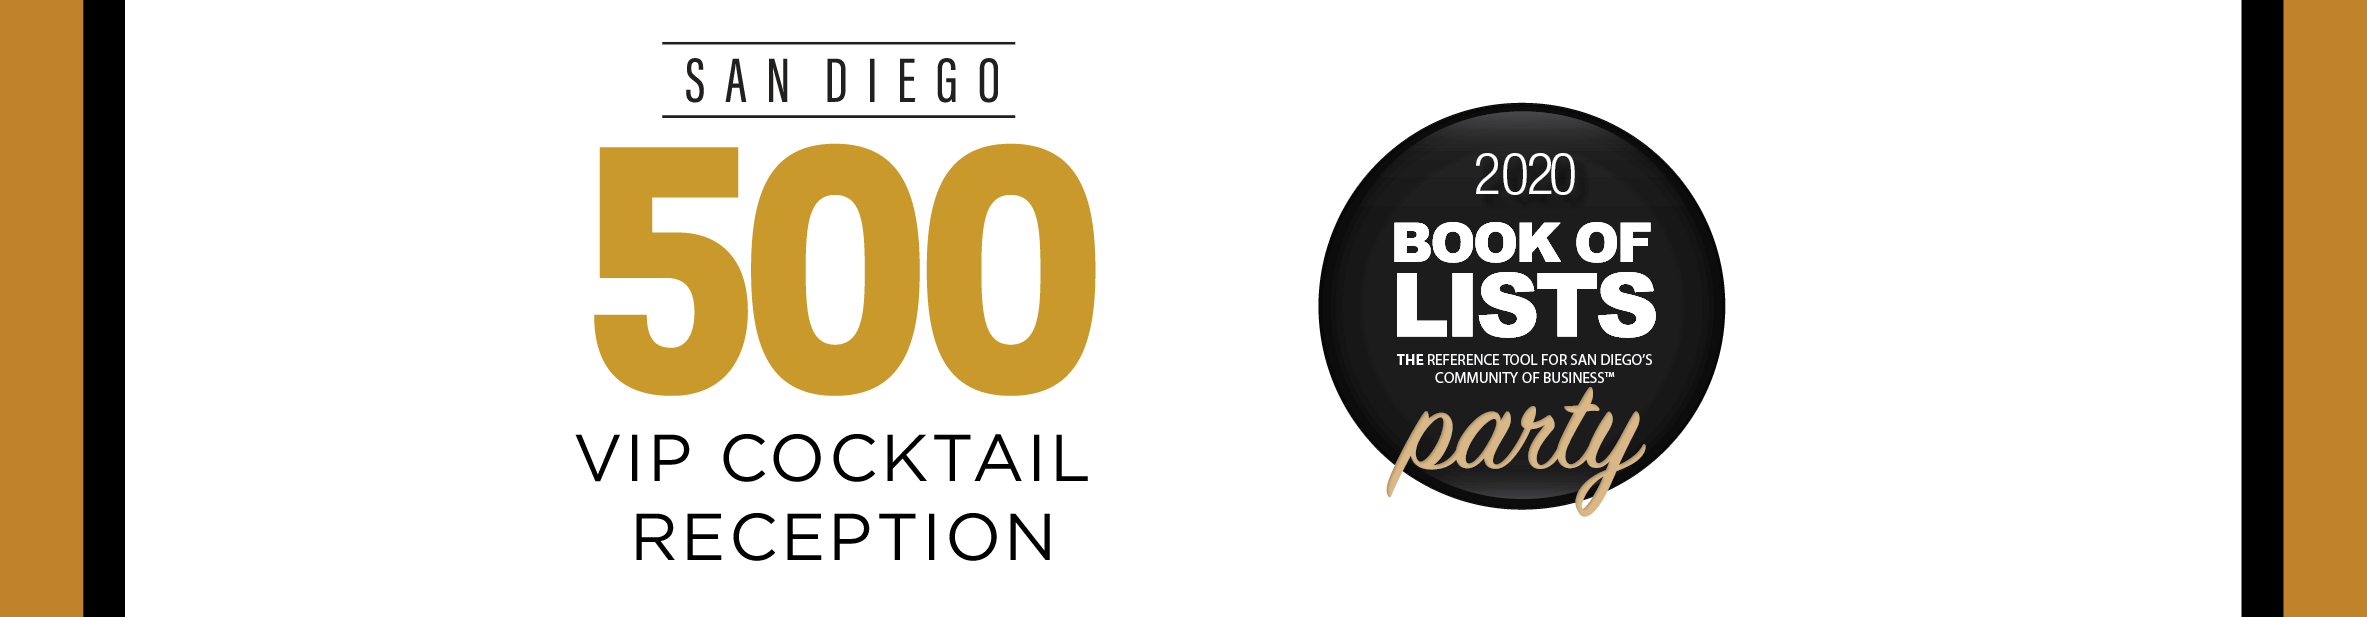 SD500 and Book of Lists